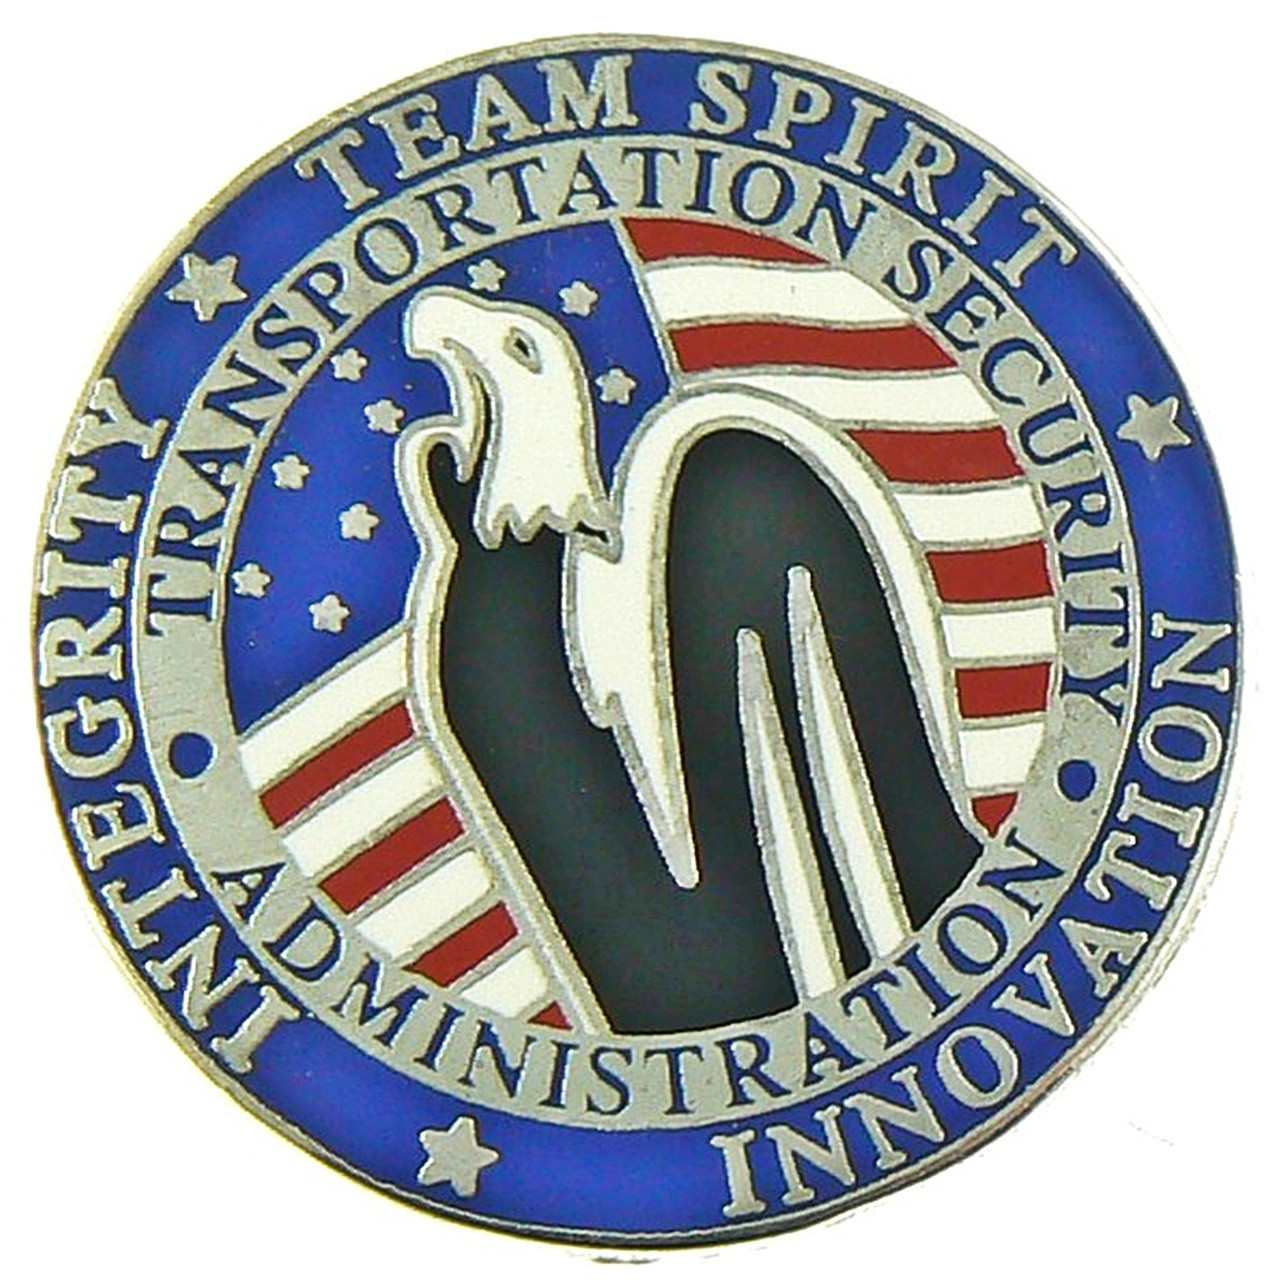 Transportation Security Administration Team Spirit Mini Patch Lapel Pin